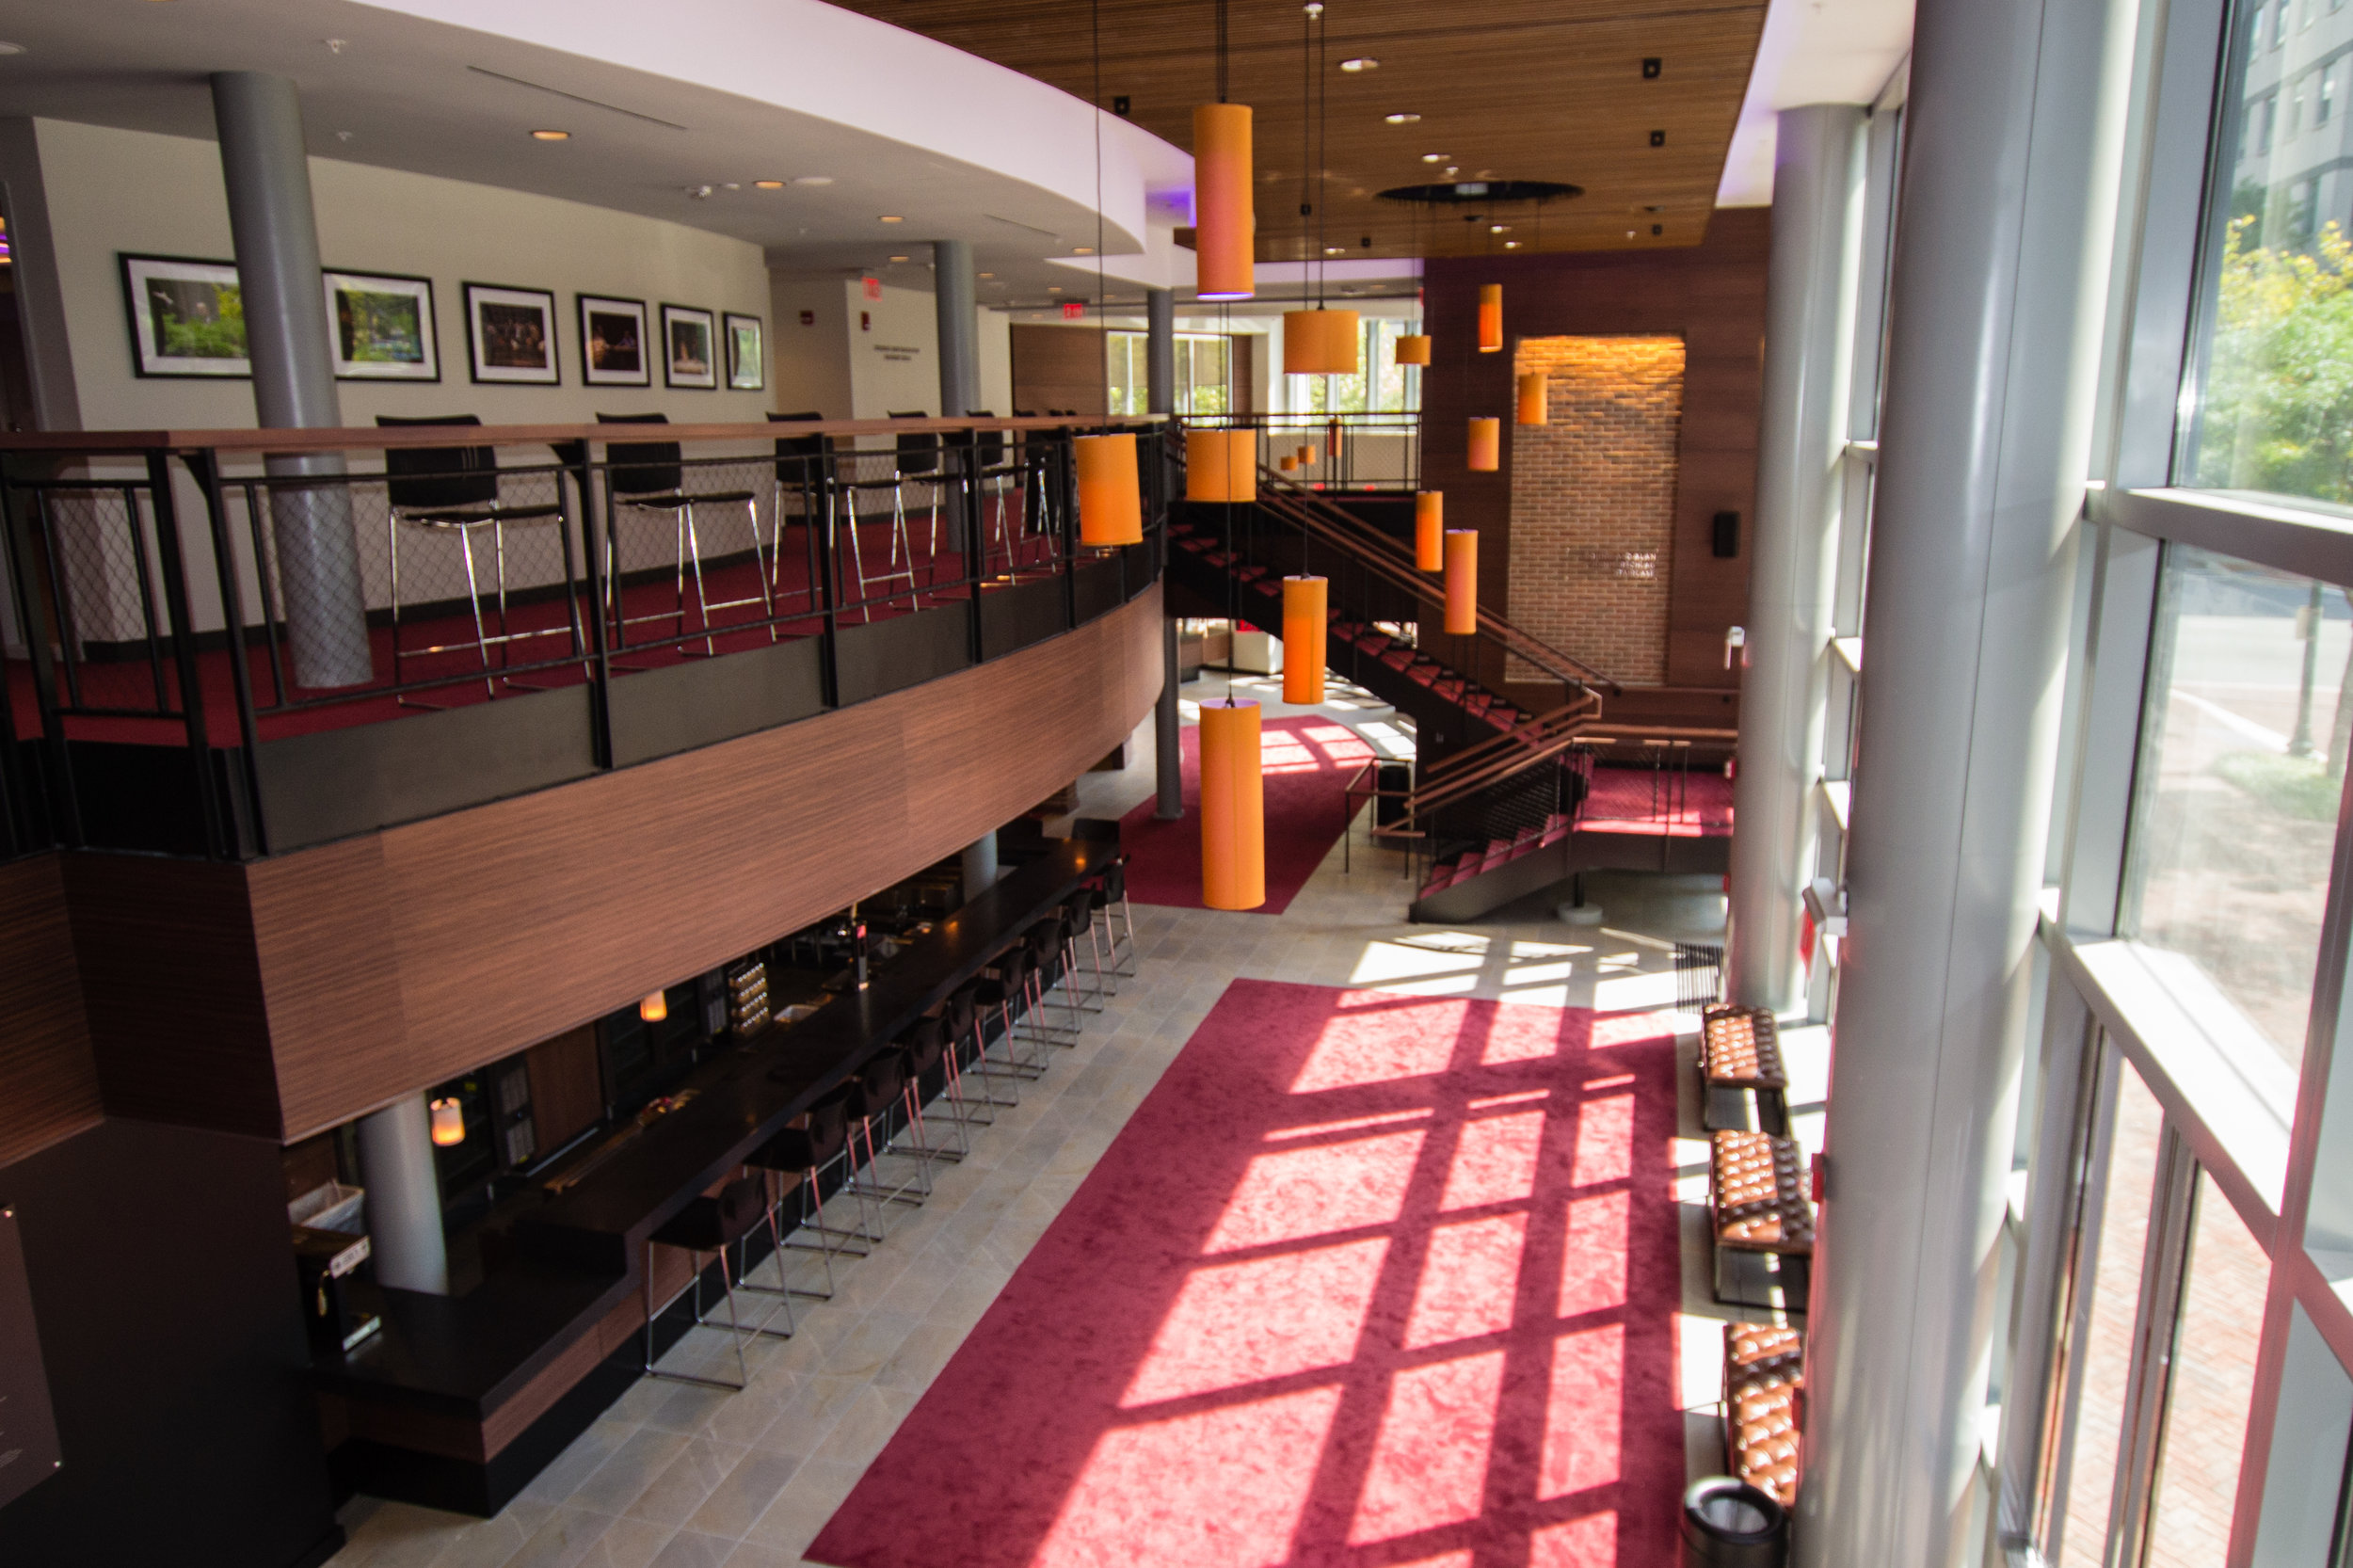 August 2019  - The view of the main lobby from the new balcony foyer